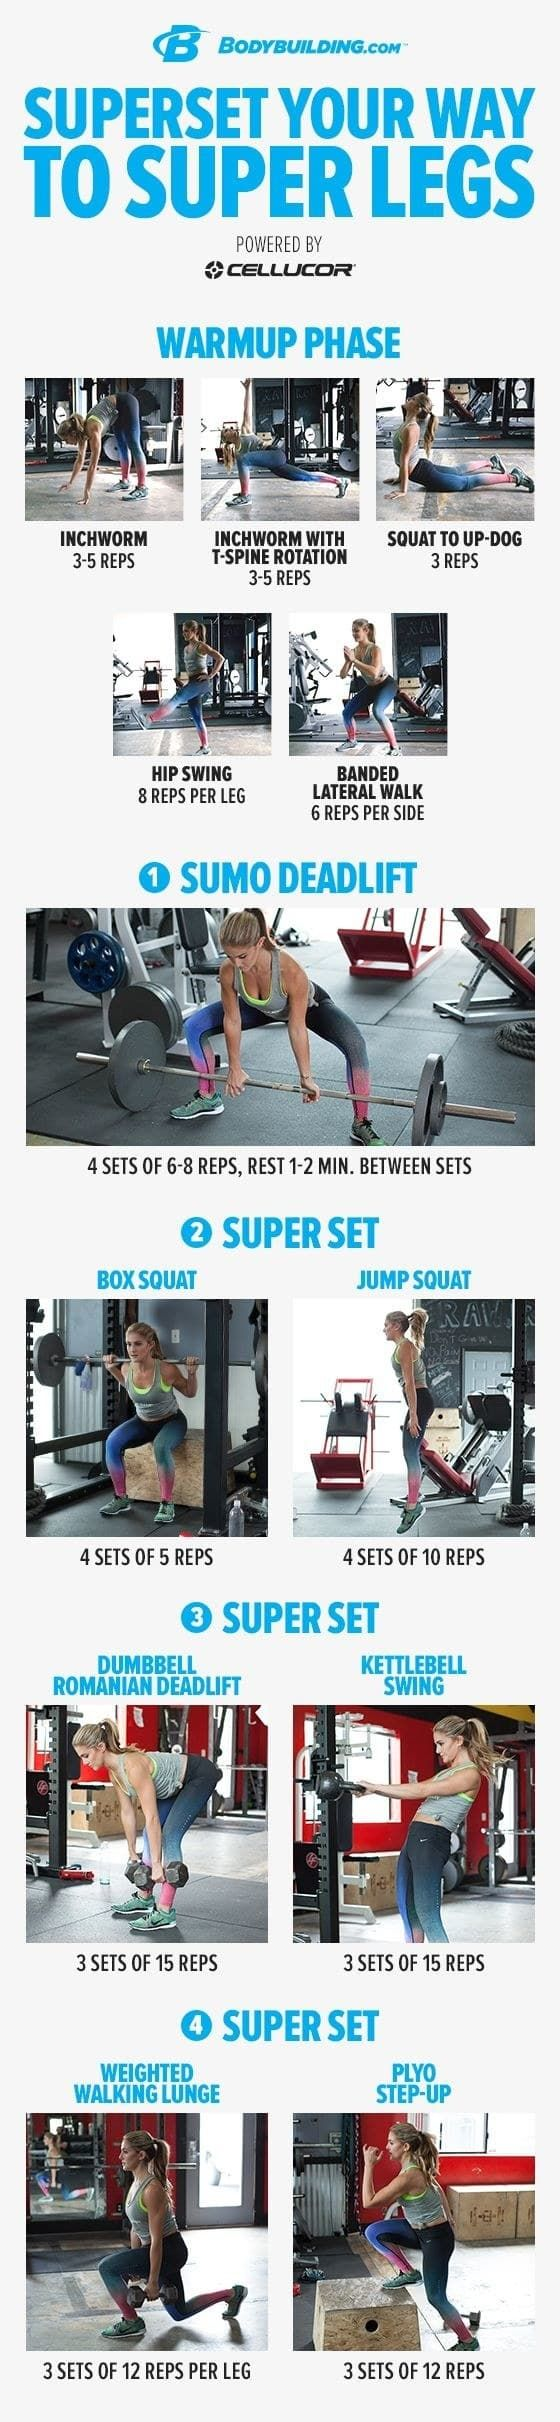 Super Set to way to your Super legs